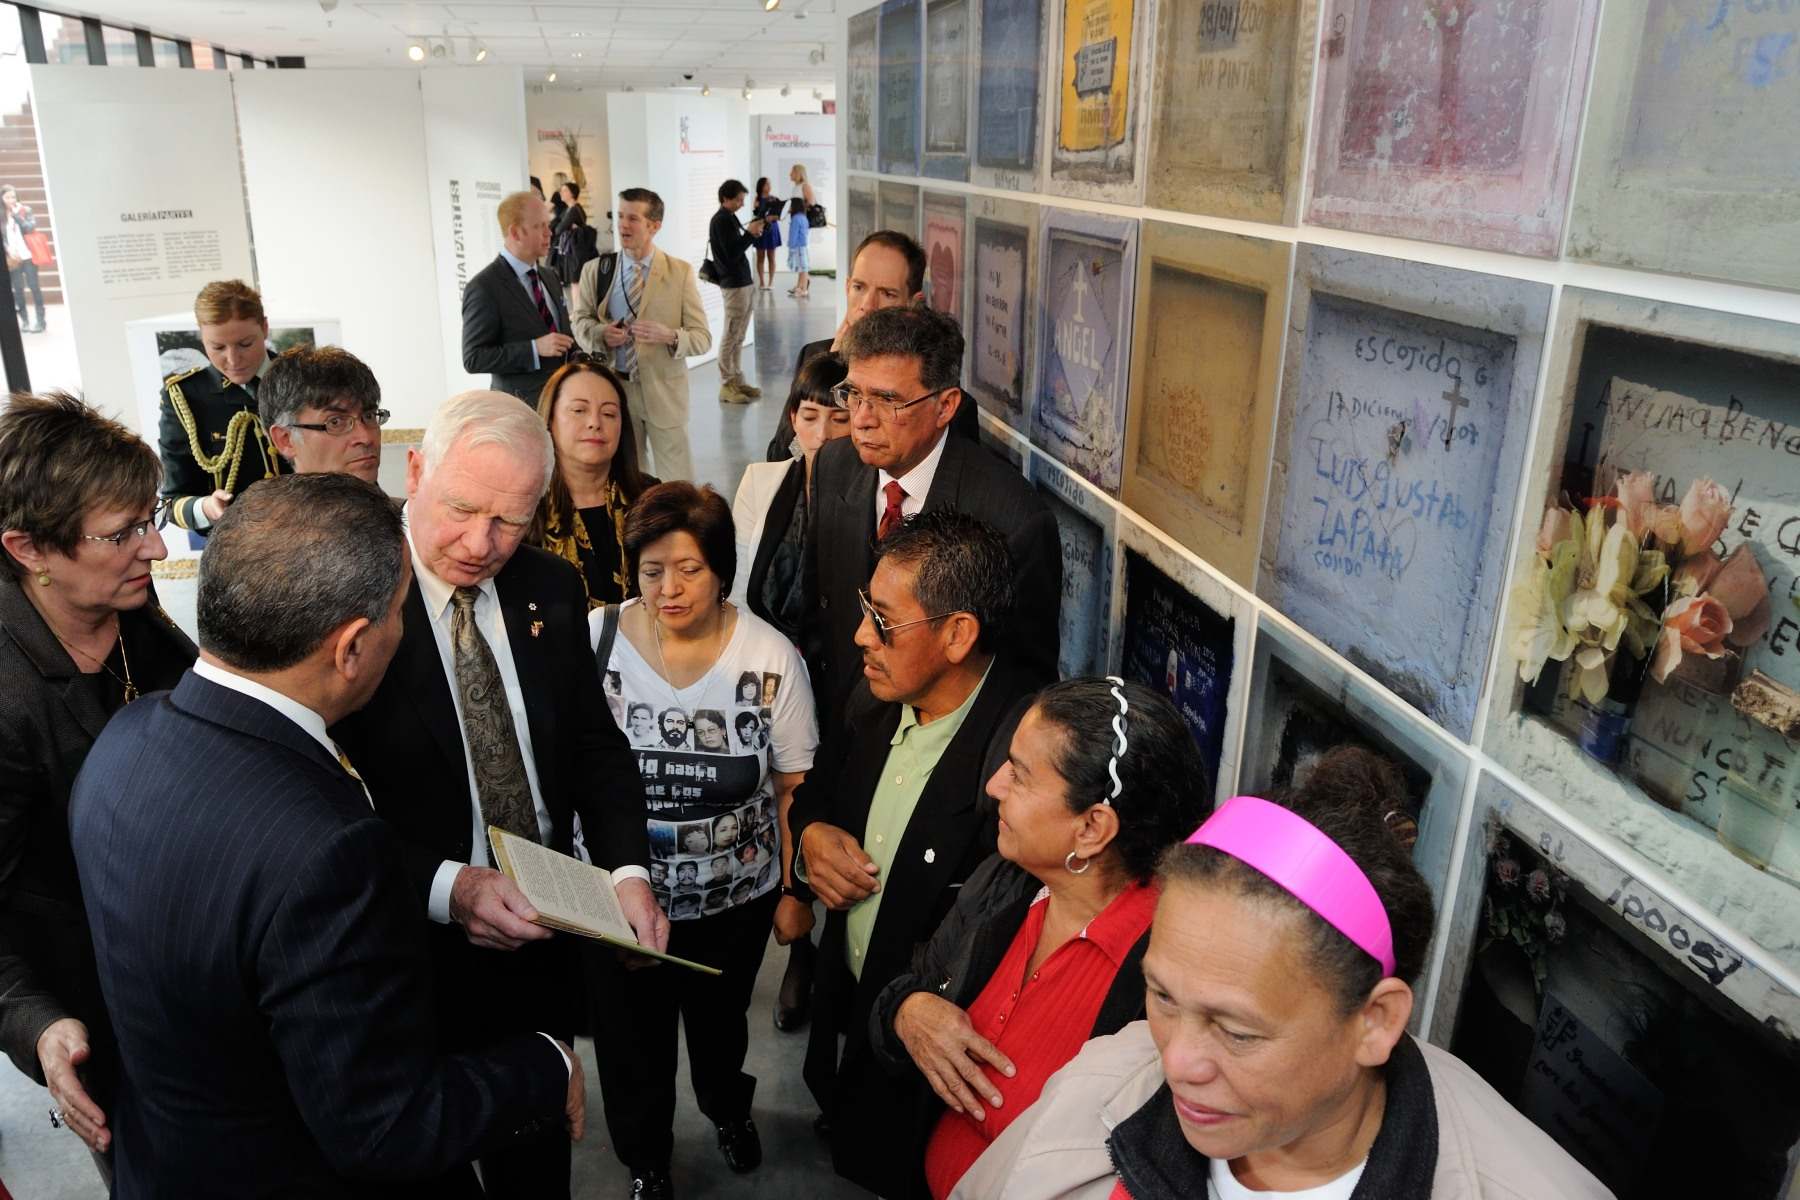 Following the discussion, Their Excellencies and Canadian delegates participated in a tour of the Museum for Historical Memory during which they had the opportunity to meet with victims of the armed conflict.